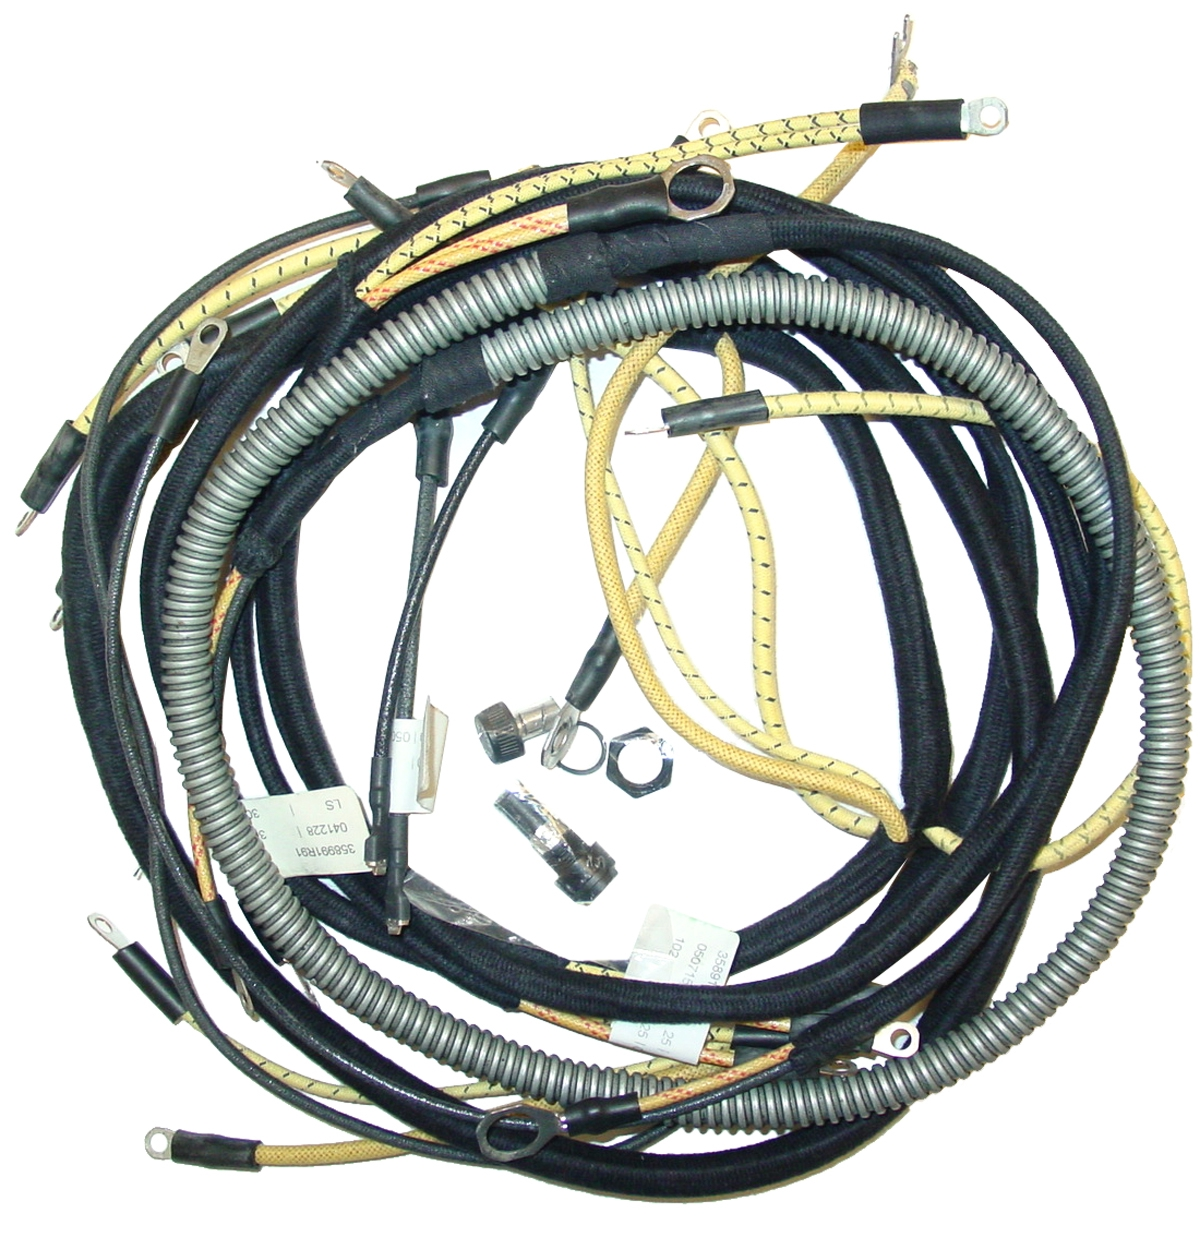 Wiring Harness - Case Ih Parts